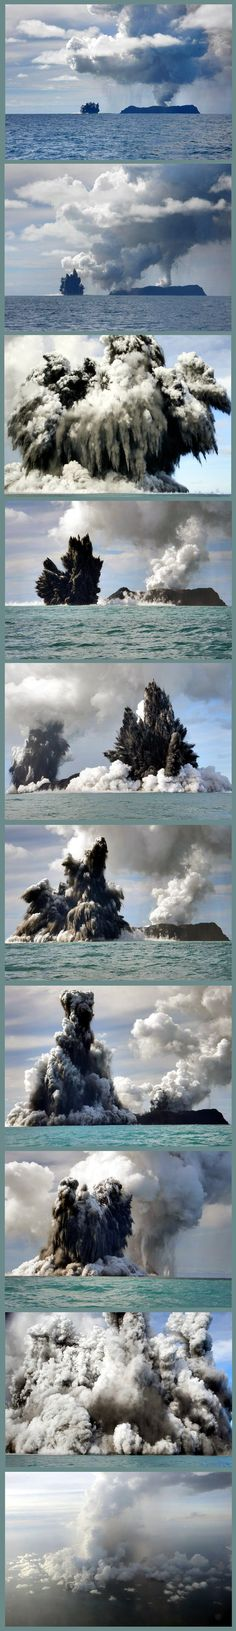 Surtseyan eruption in the South Pacific